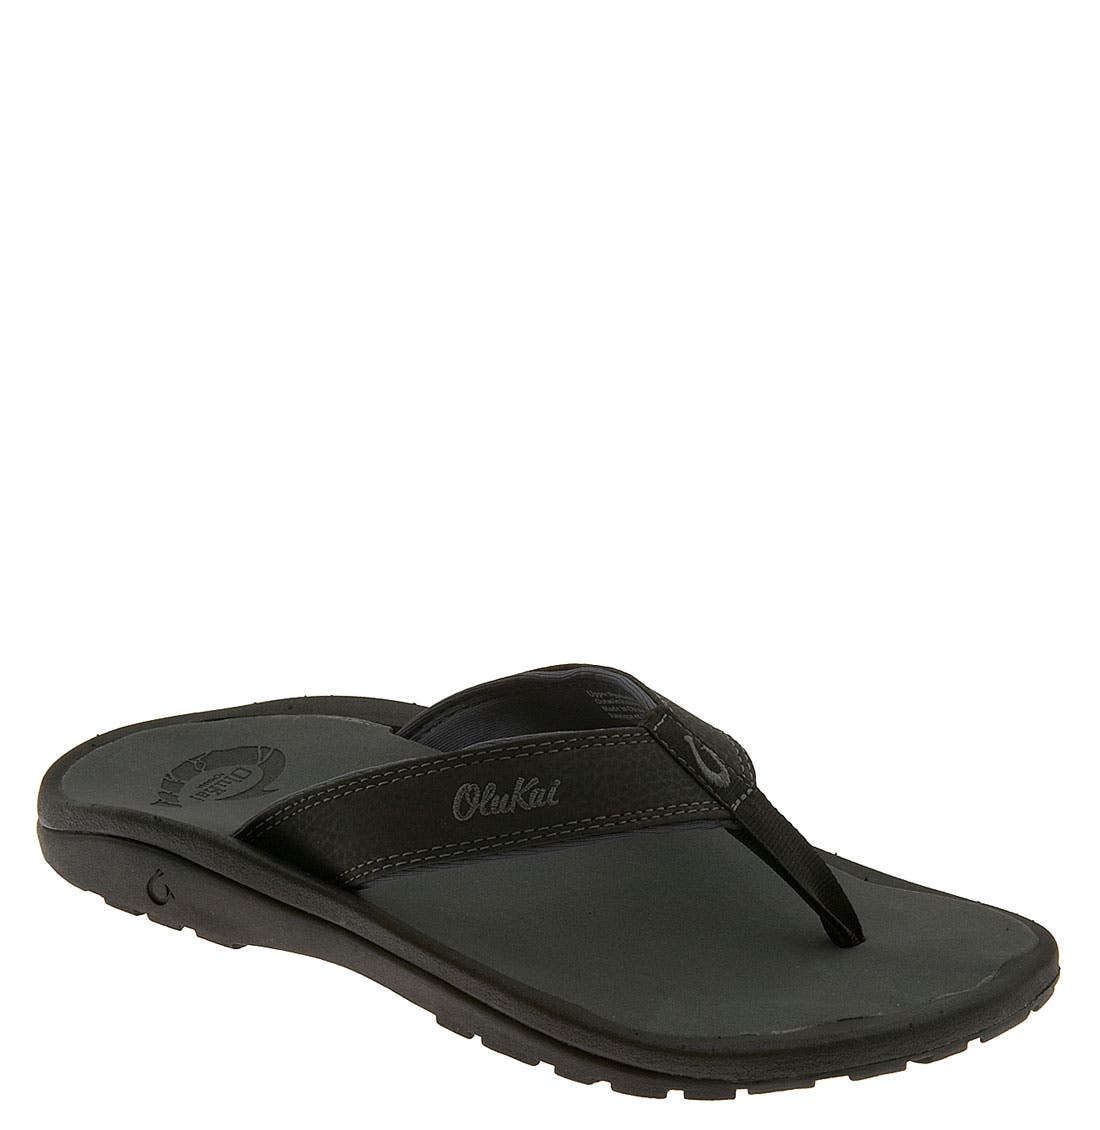 'Ohana' Flip Flop,                         Main,                         color, BLACK/ DARK SHADOW